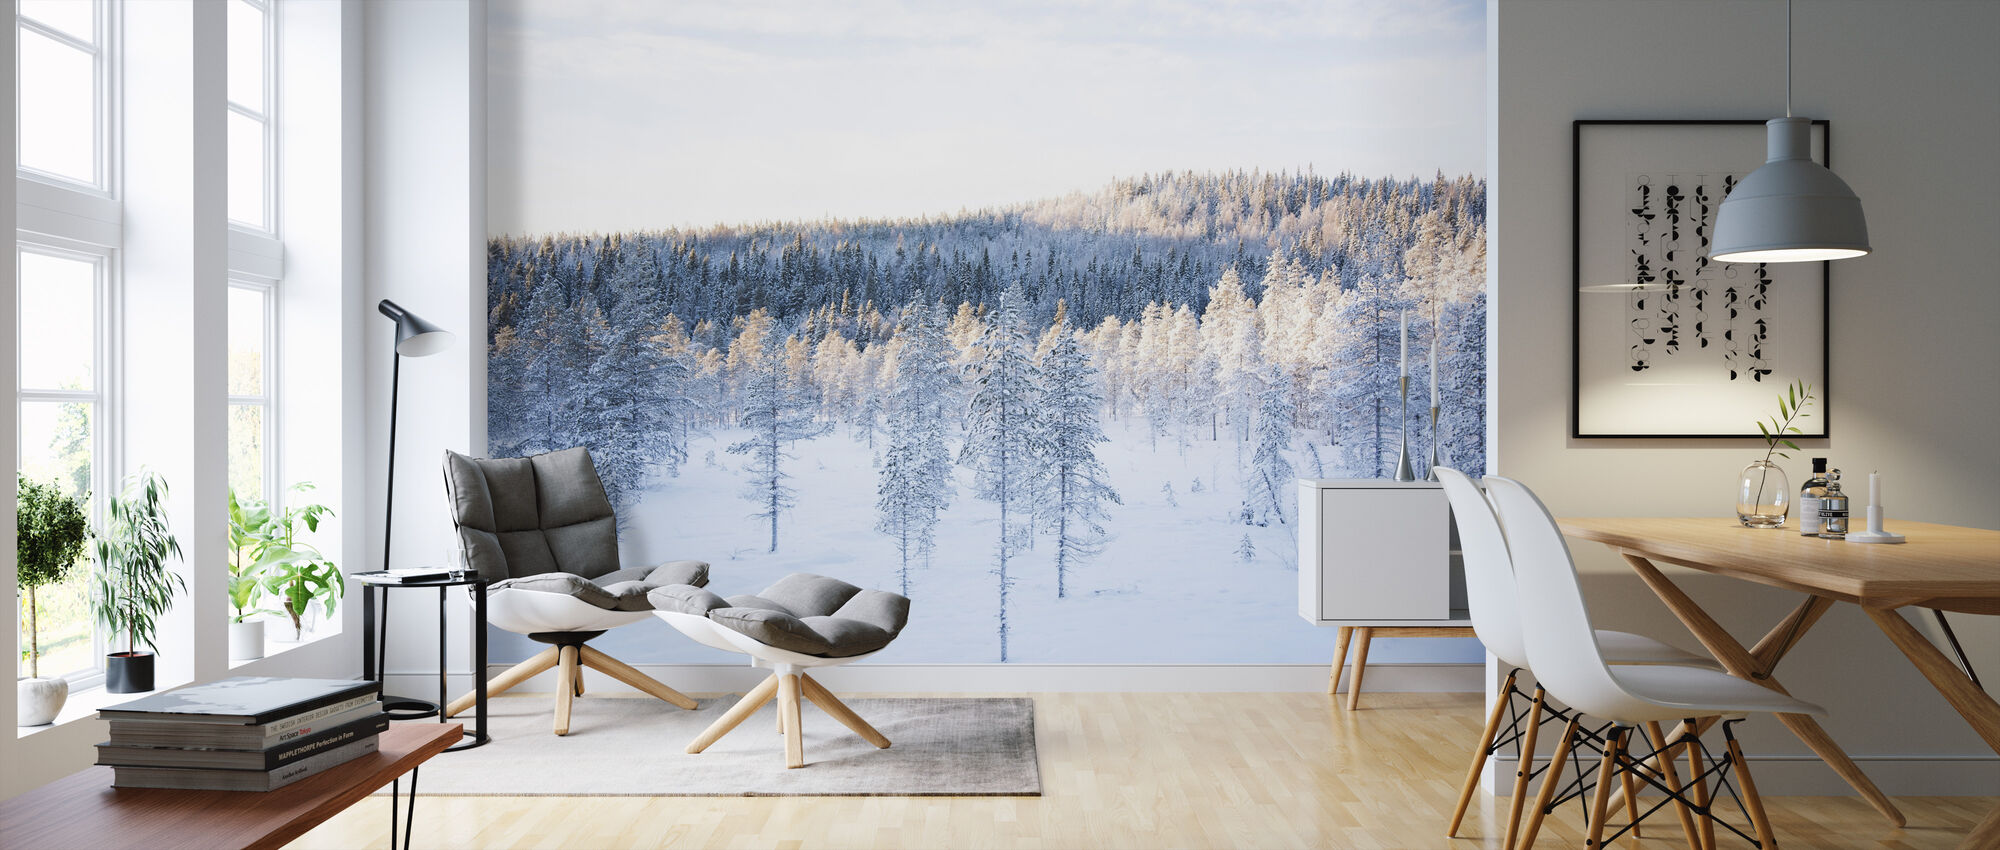 Silence of Winter I - Wallpaper - Living Room